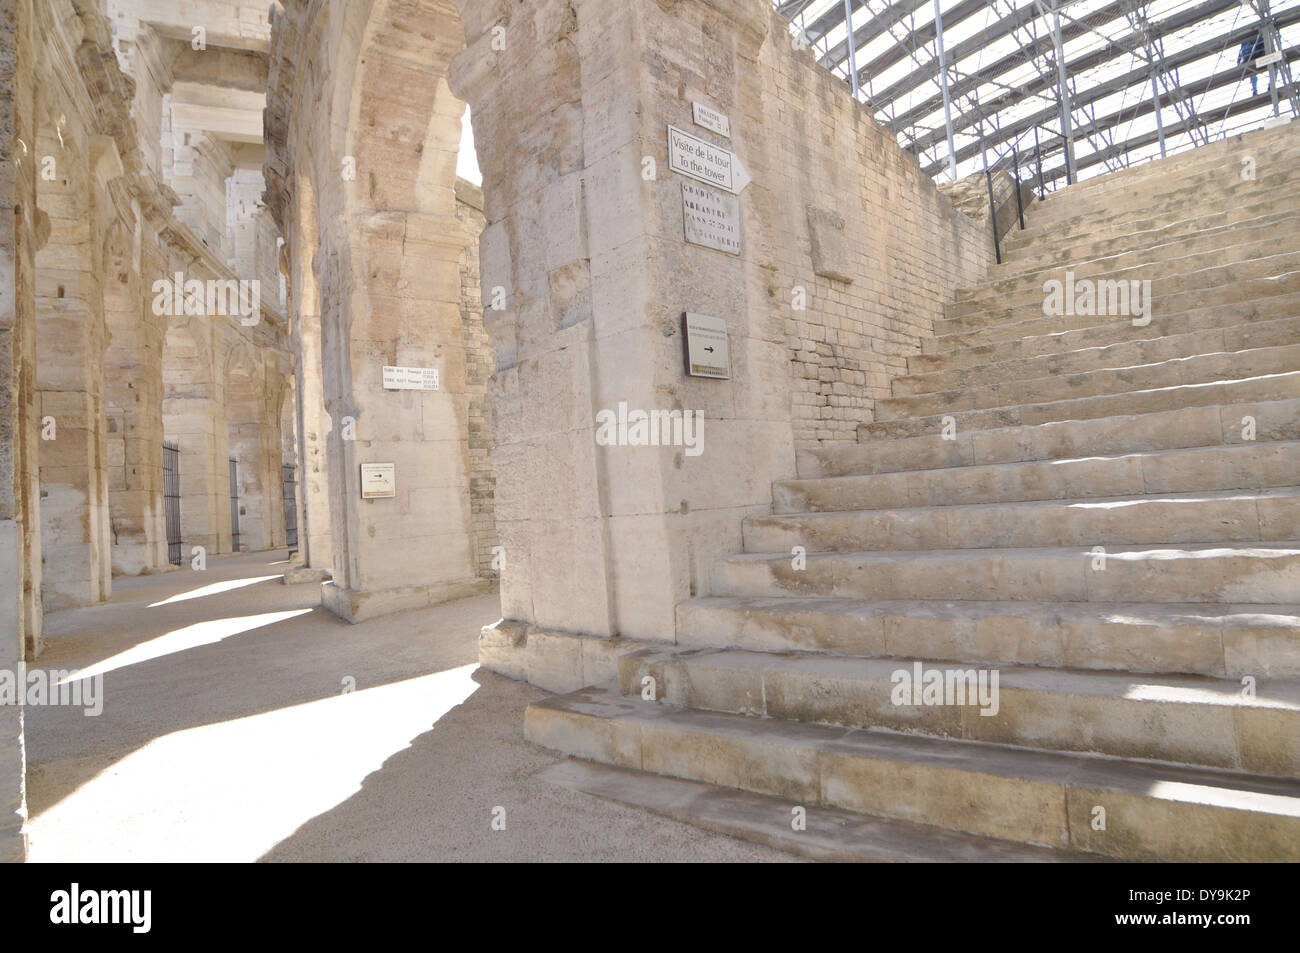 The spruced-up stone-blasted arches and steps of the Roman Amphitheatre in Arles France - Stock Image